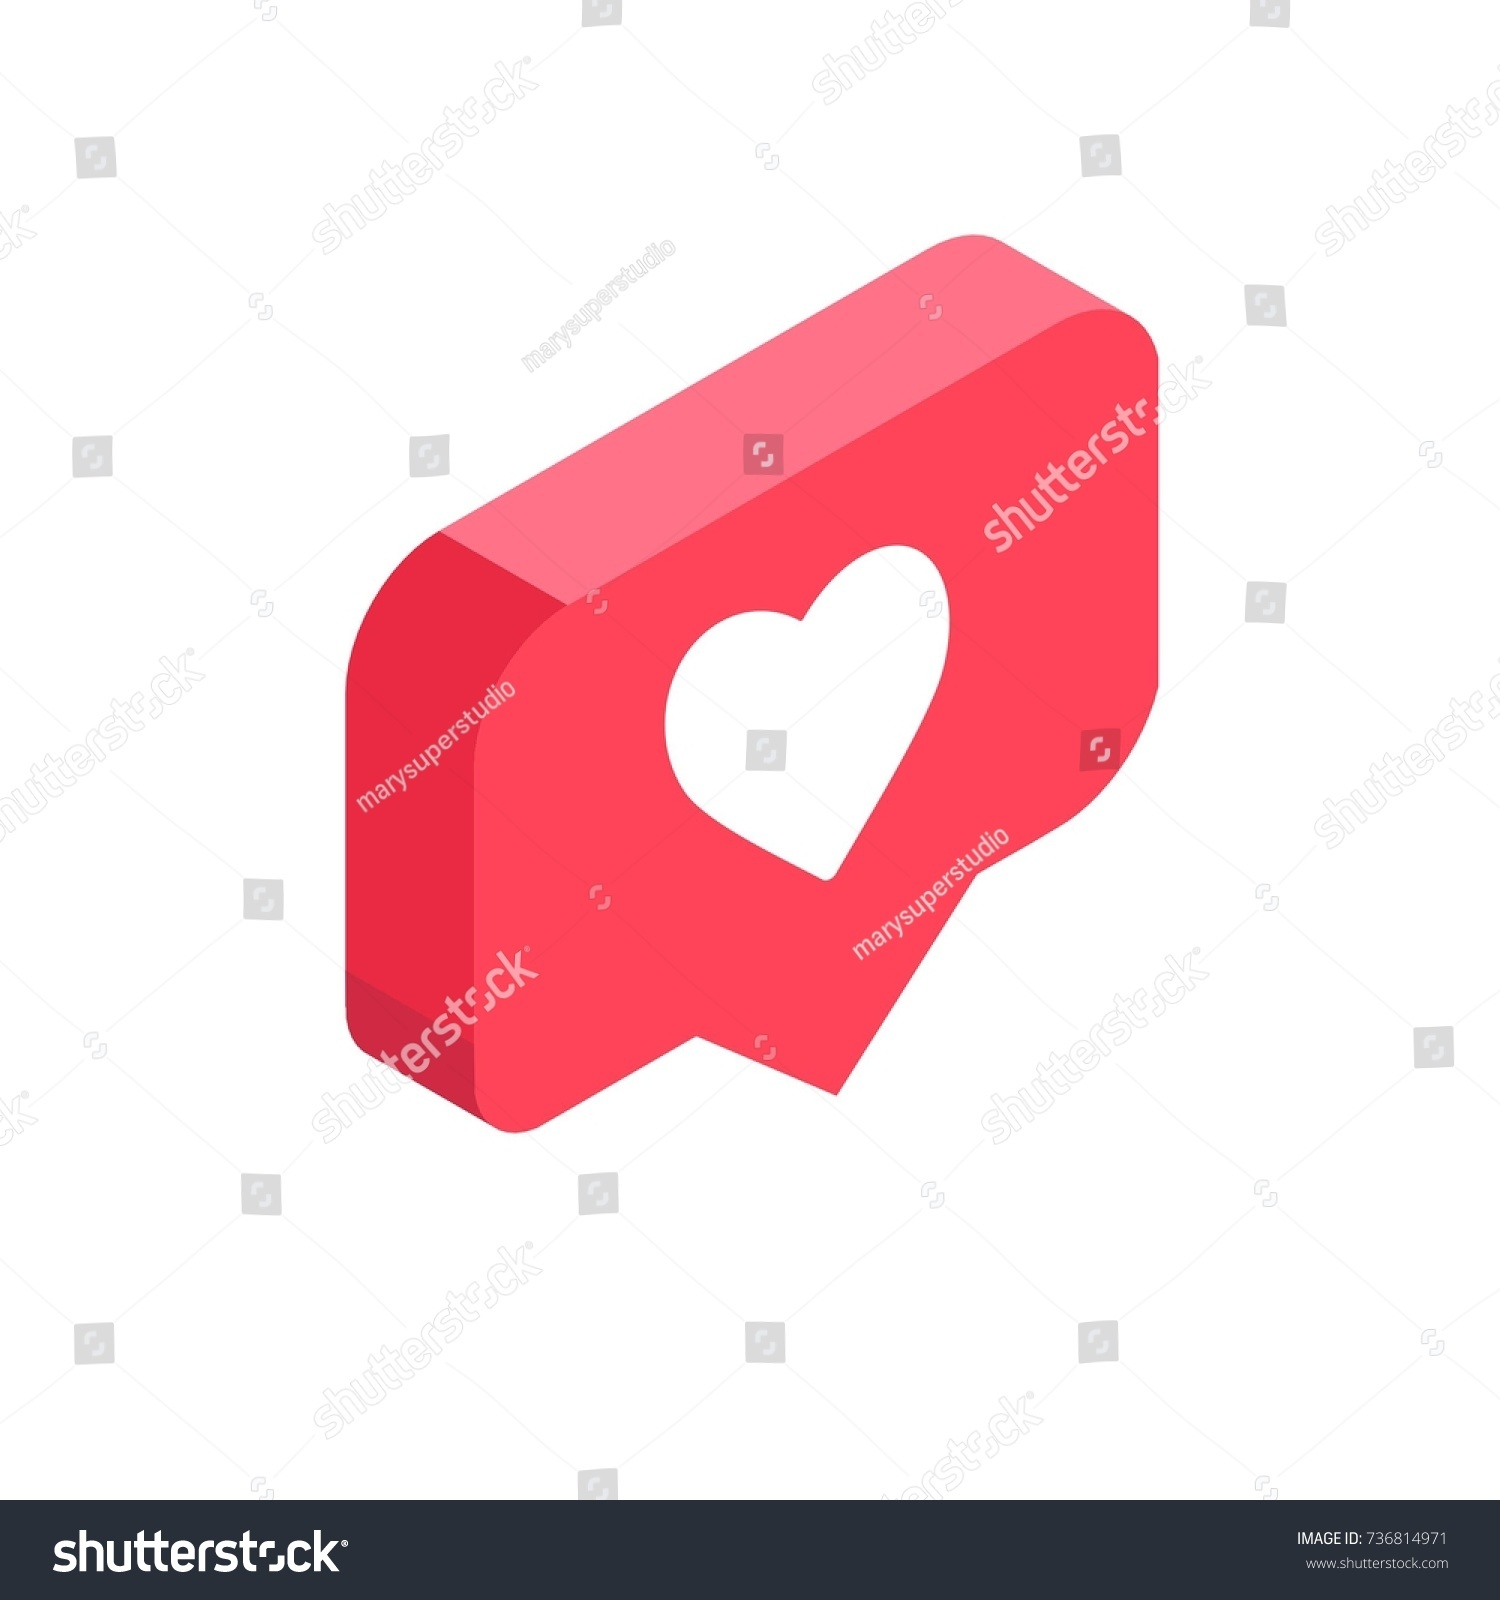 Stock illustration 3d red text quot yes quot stock illustration royalty - Instagram Like Isometric Icon Pink 3d Design Illustration Of The Notification On The Social